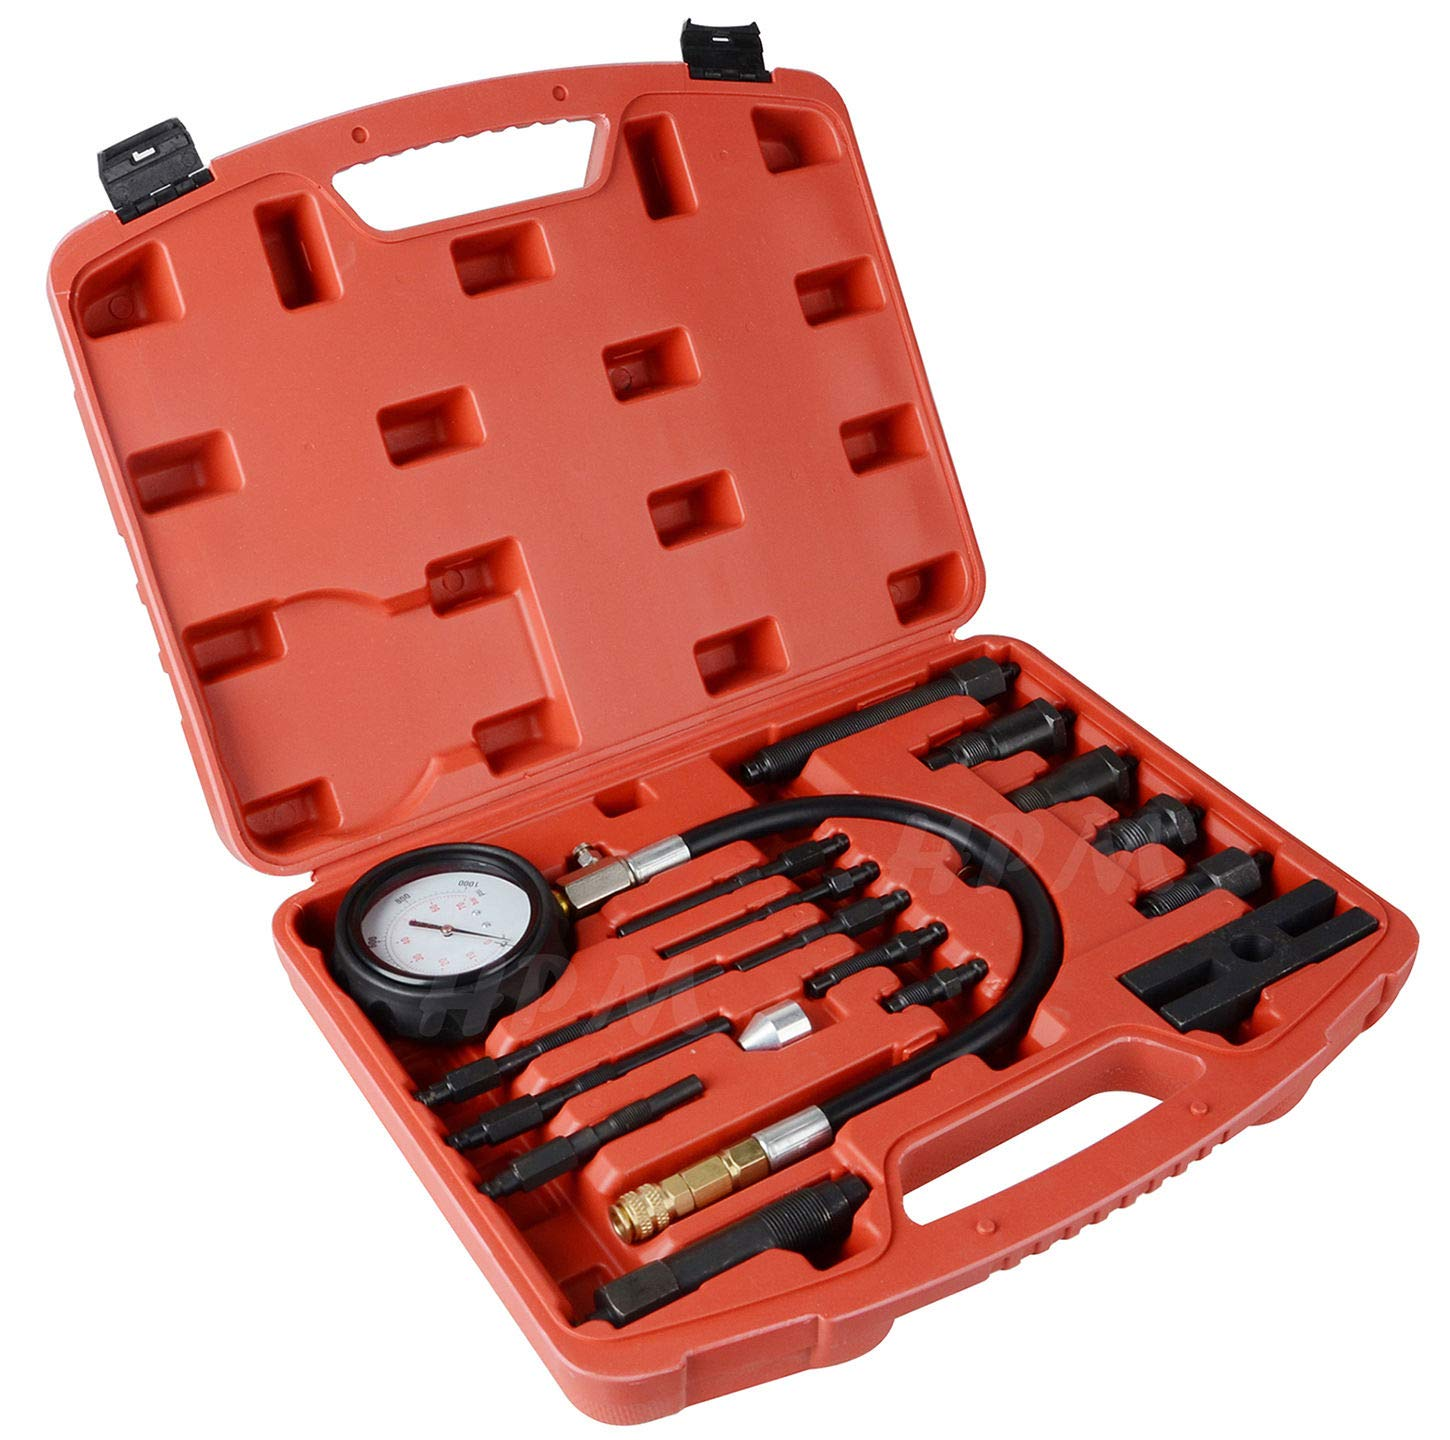 YOLO Stores - Compression Tester Diesel Engine Kit 17pc Tool Set Automotive Compressor, 0-70 Bar/0-1000 Psi, 17 Pieces by YOLO Stores (Image #2)